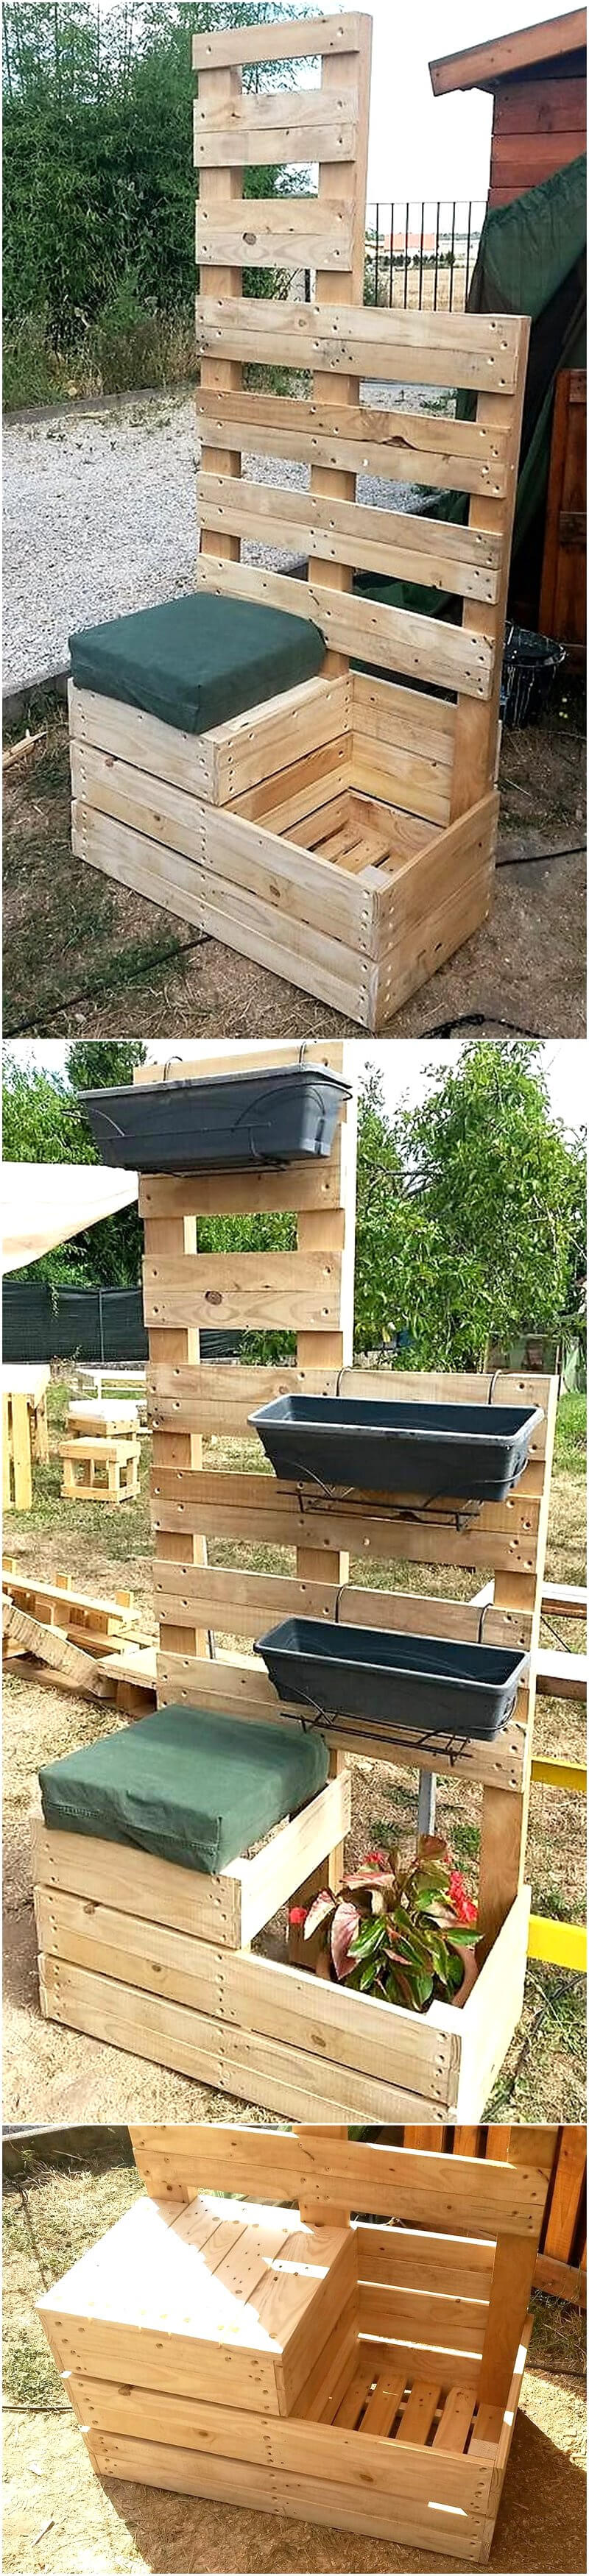 pallets wooden planter project